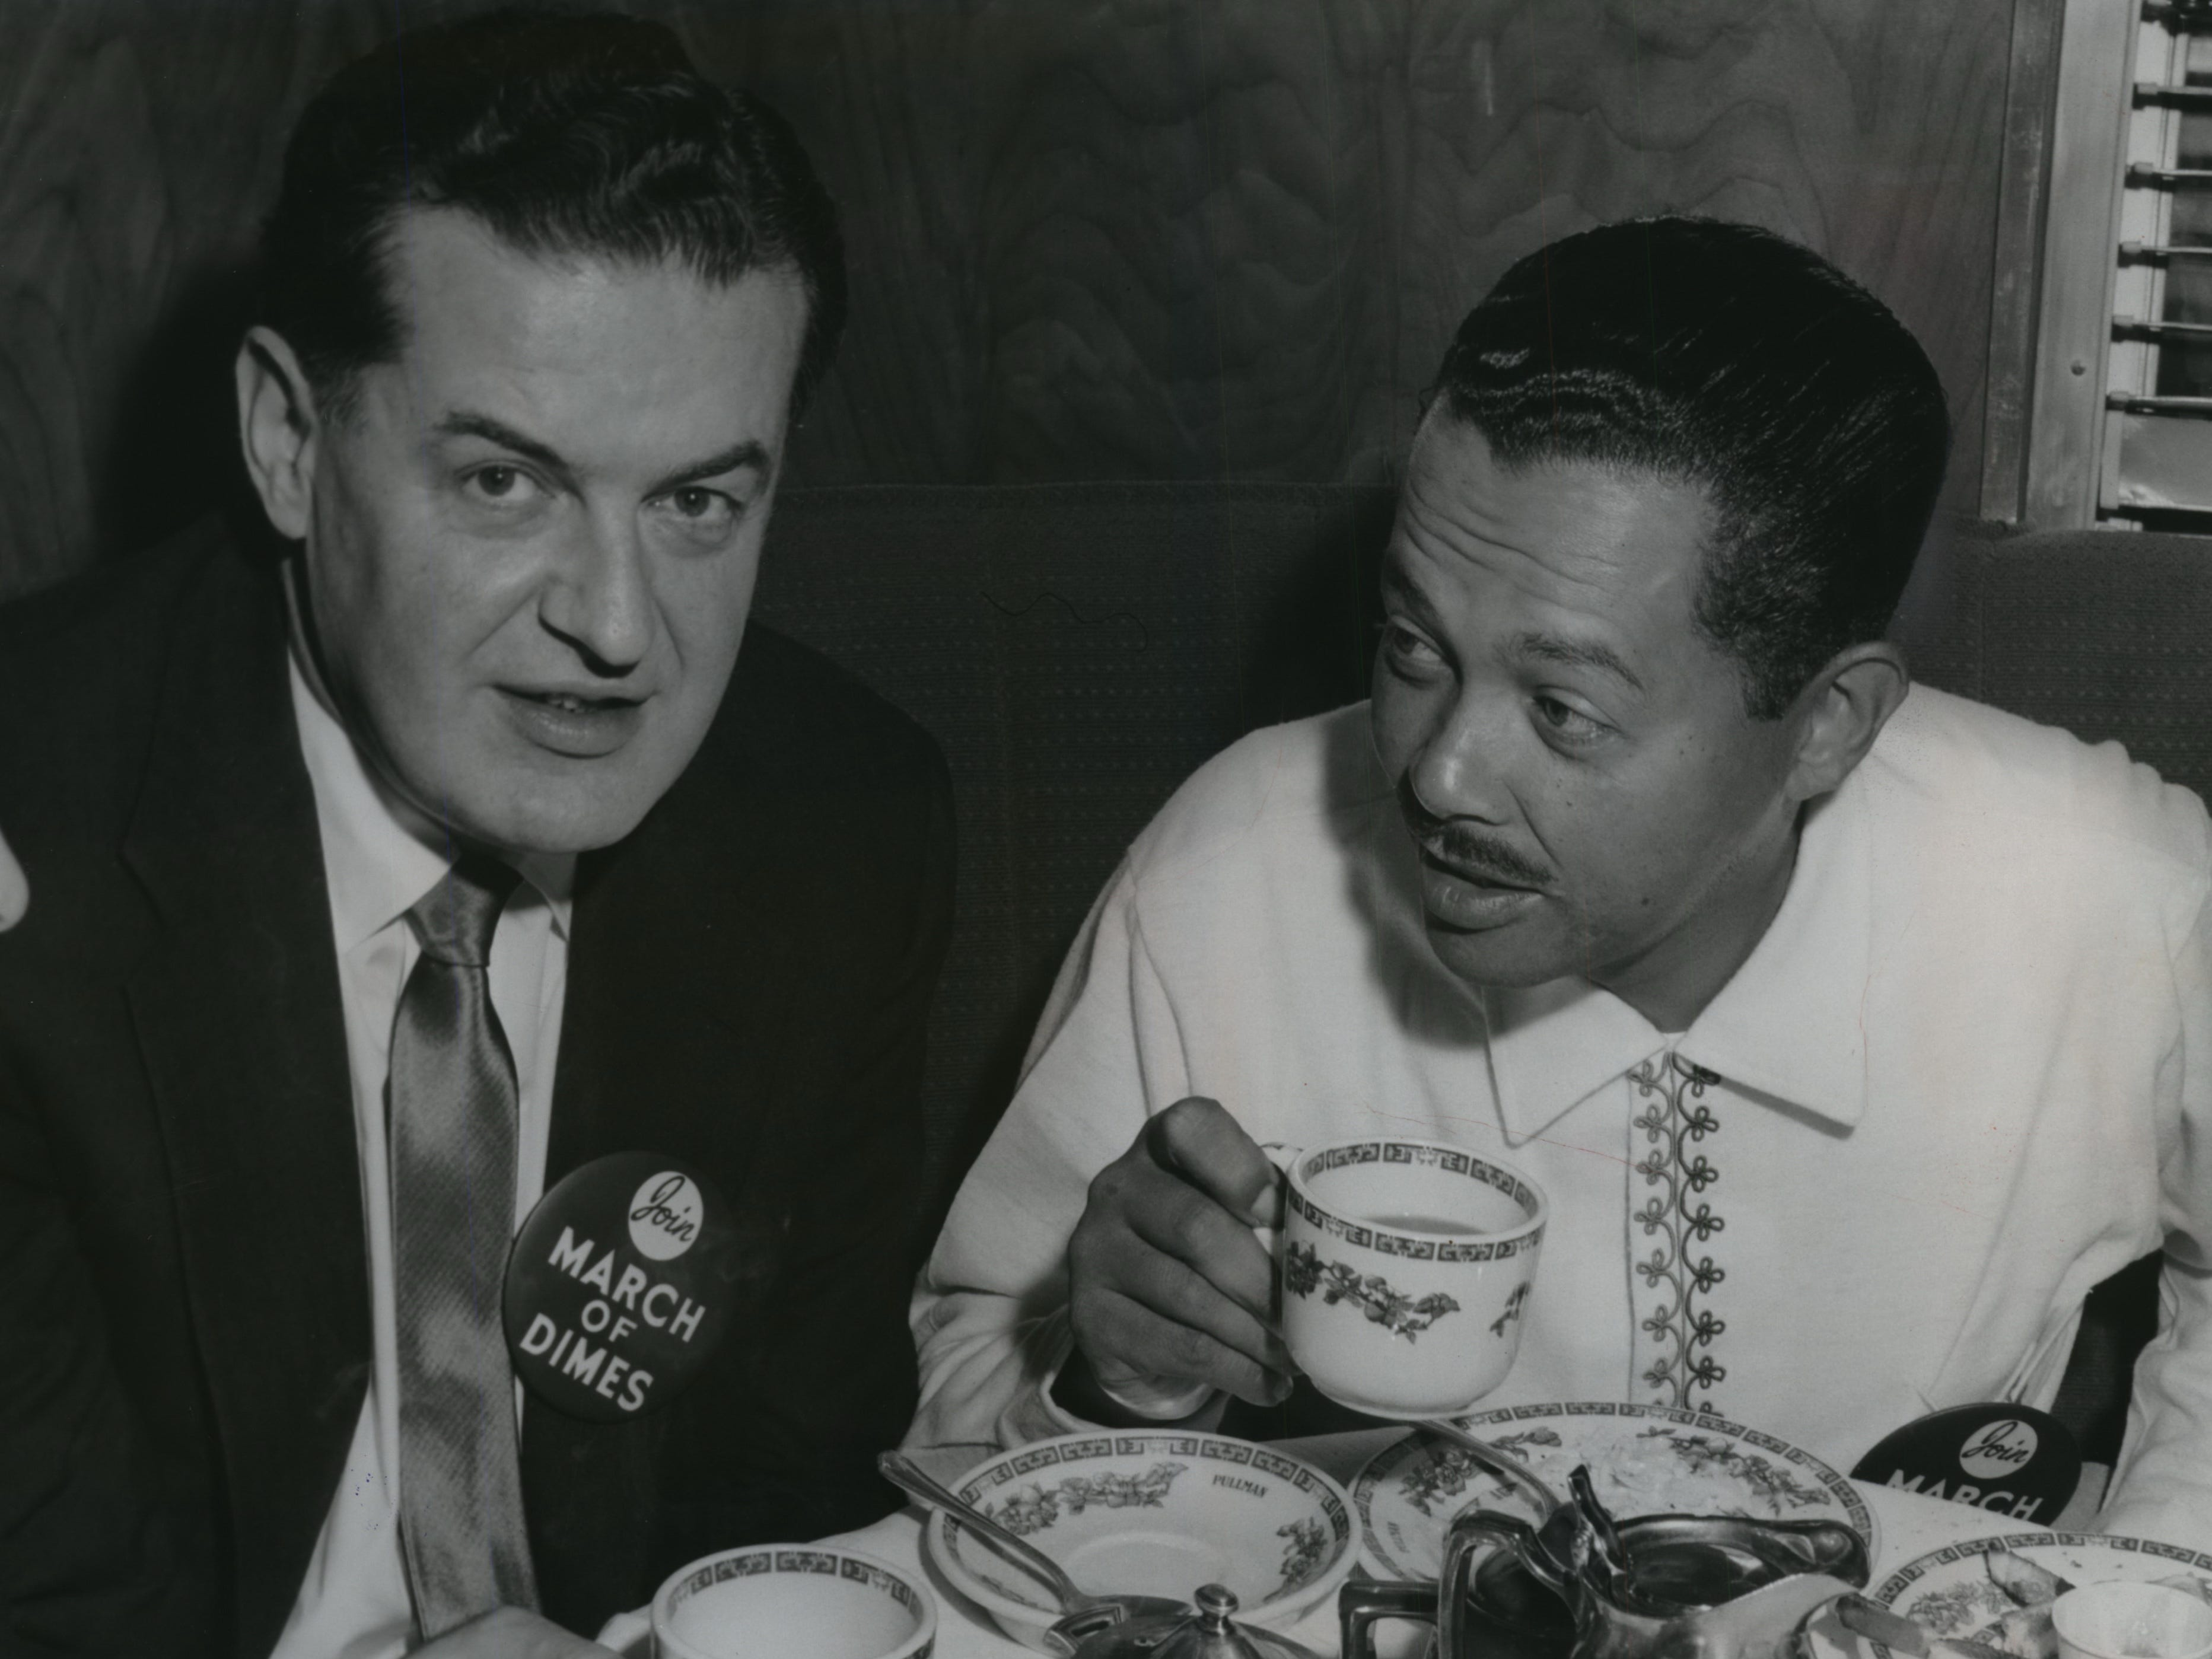 Crooner Billy Eckstine (right) and bandleader Hugo Winterhalter take break during a stop in Milwaukee for a March of Dimes fundraising drive on Jan. 15, 1956.